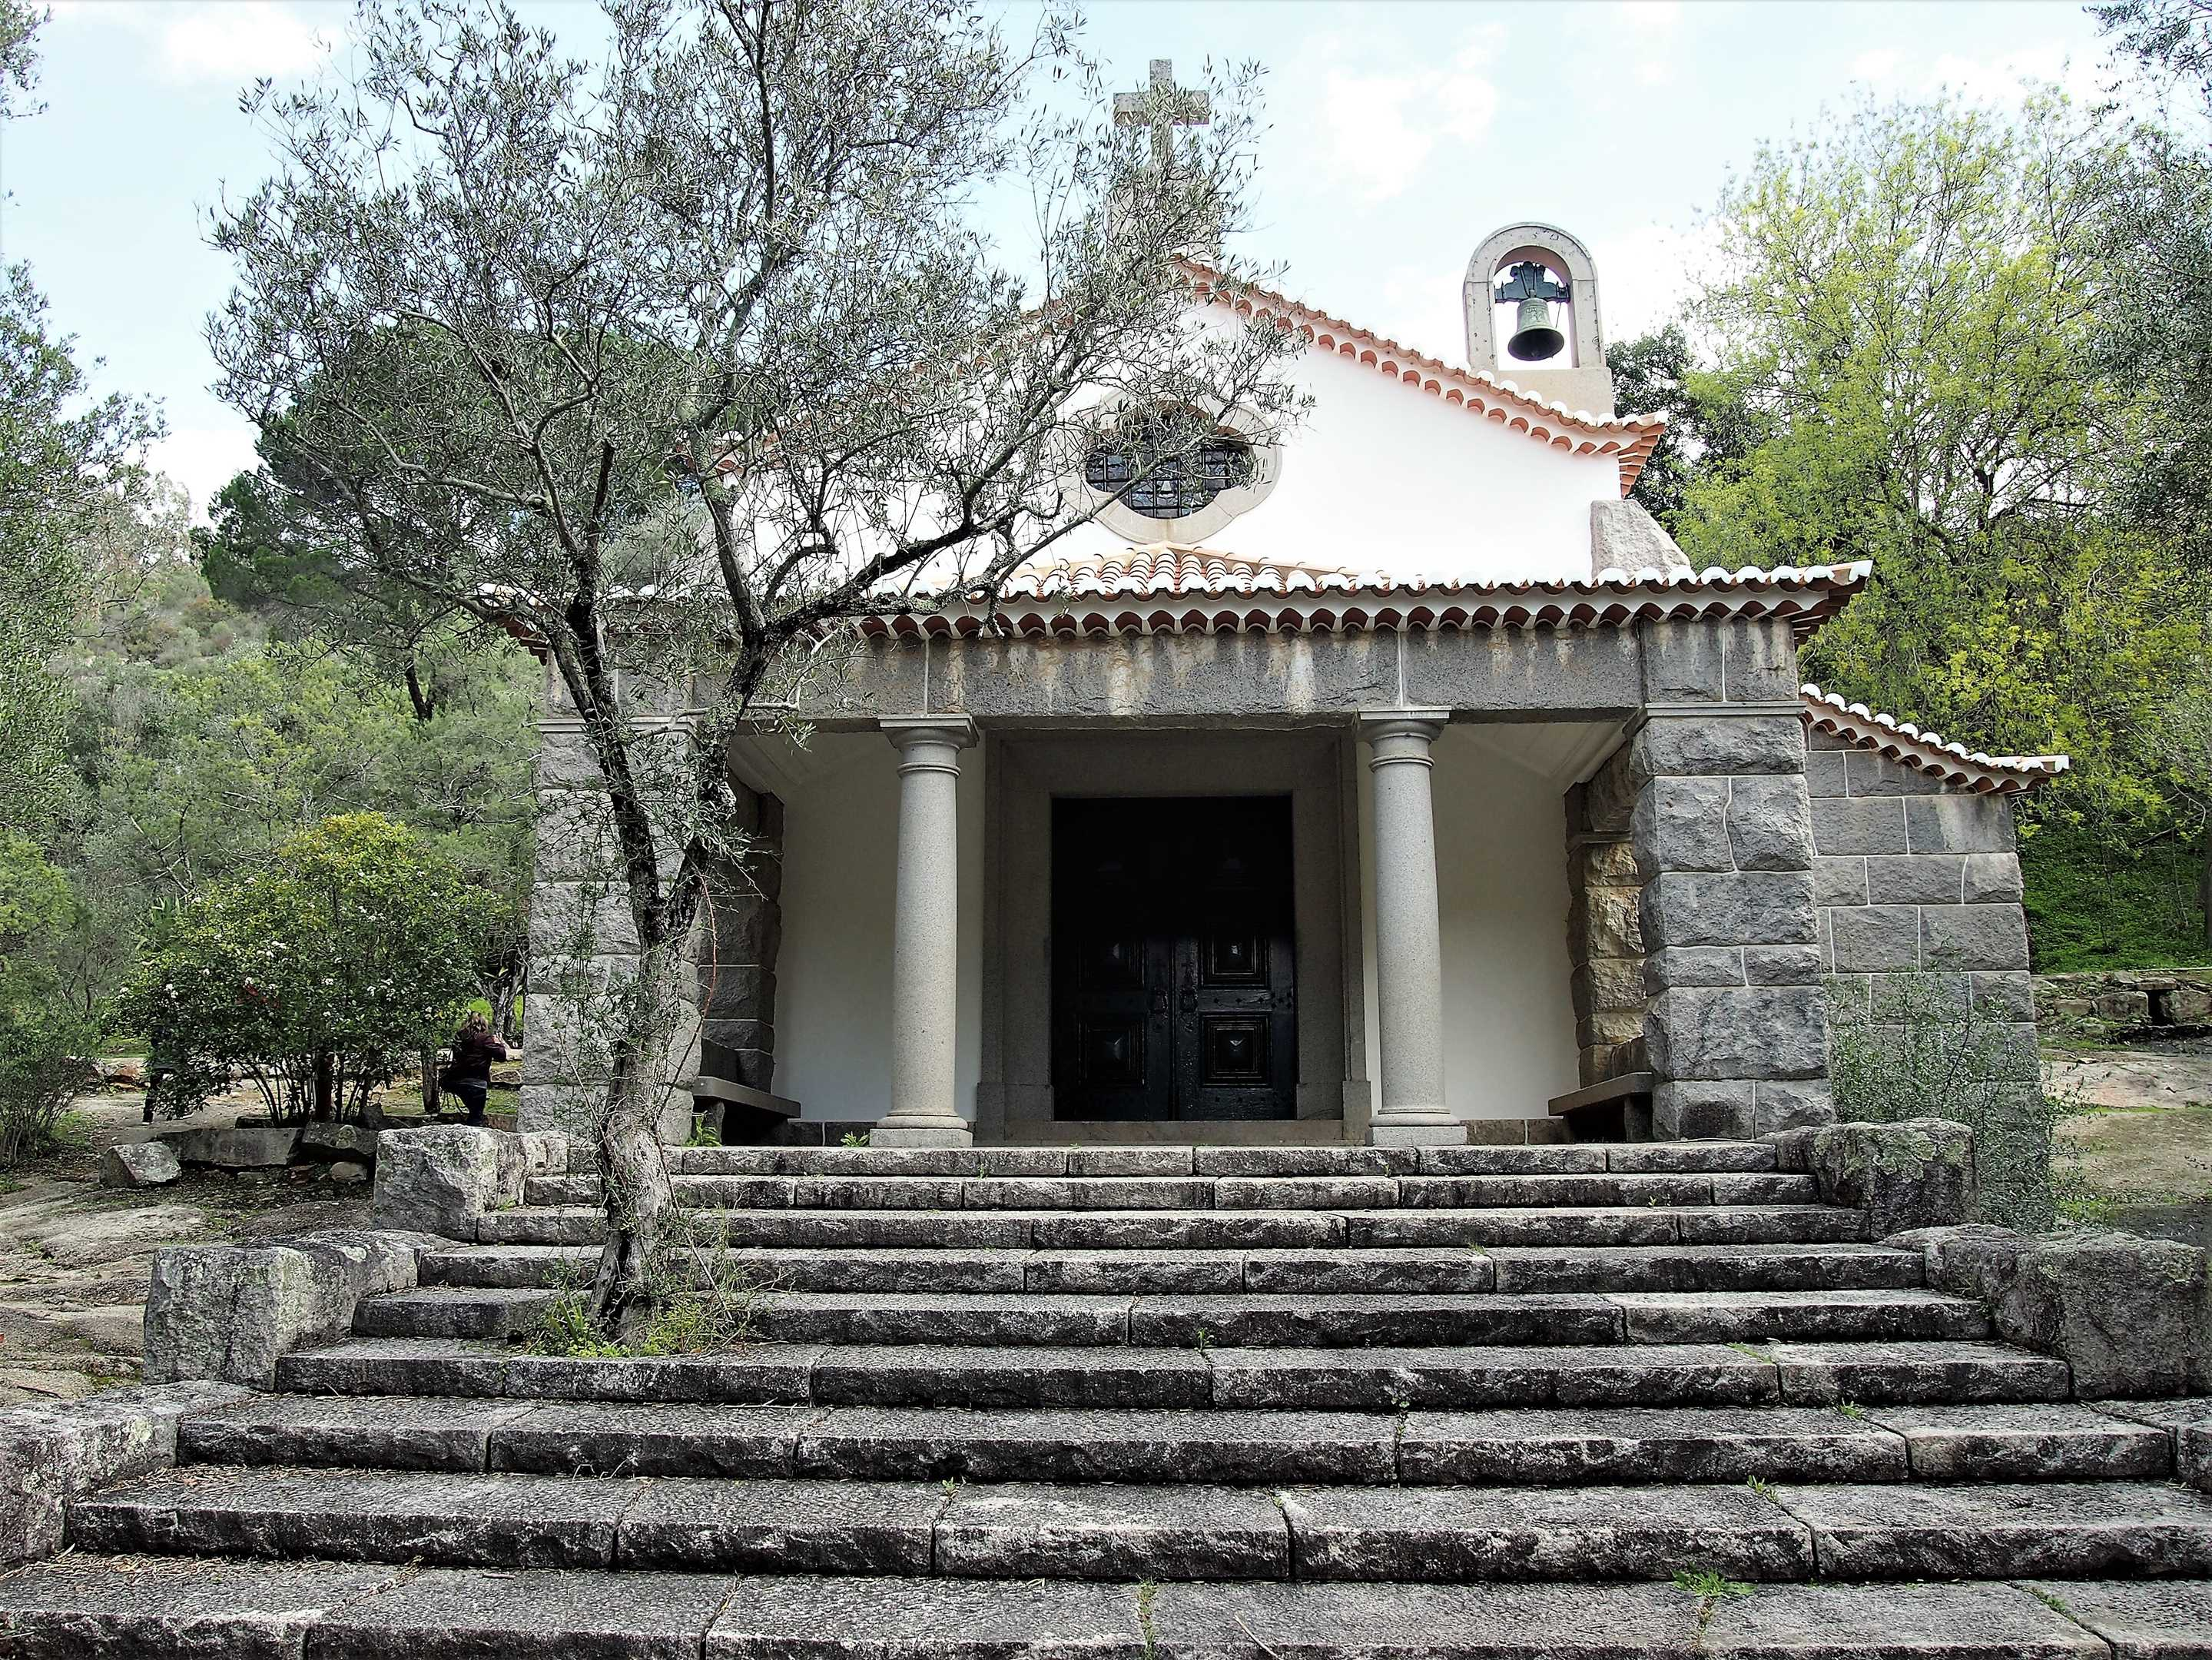 The small chapel at Caldas de Monchique - want to get married here?